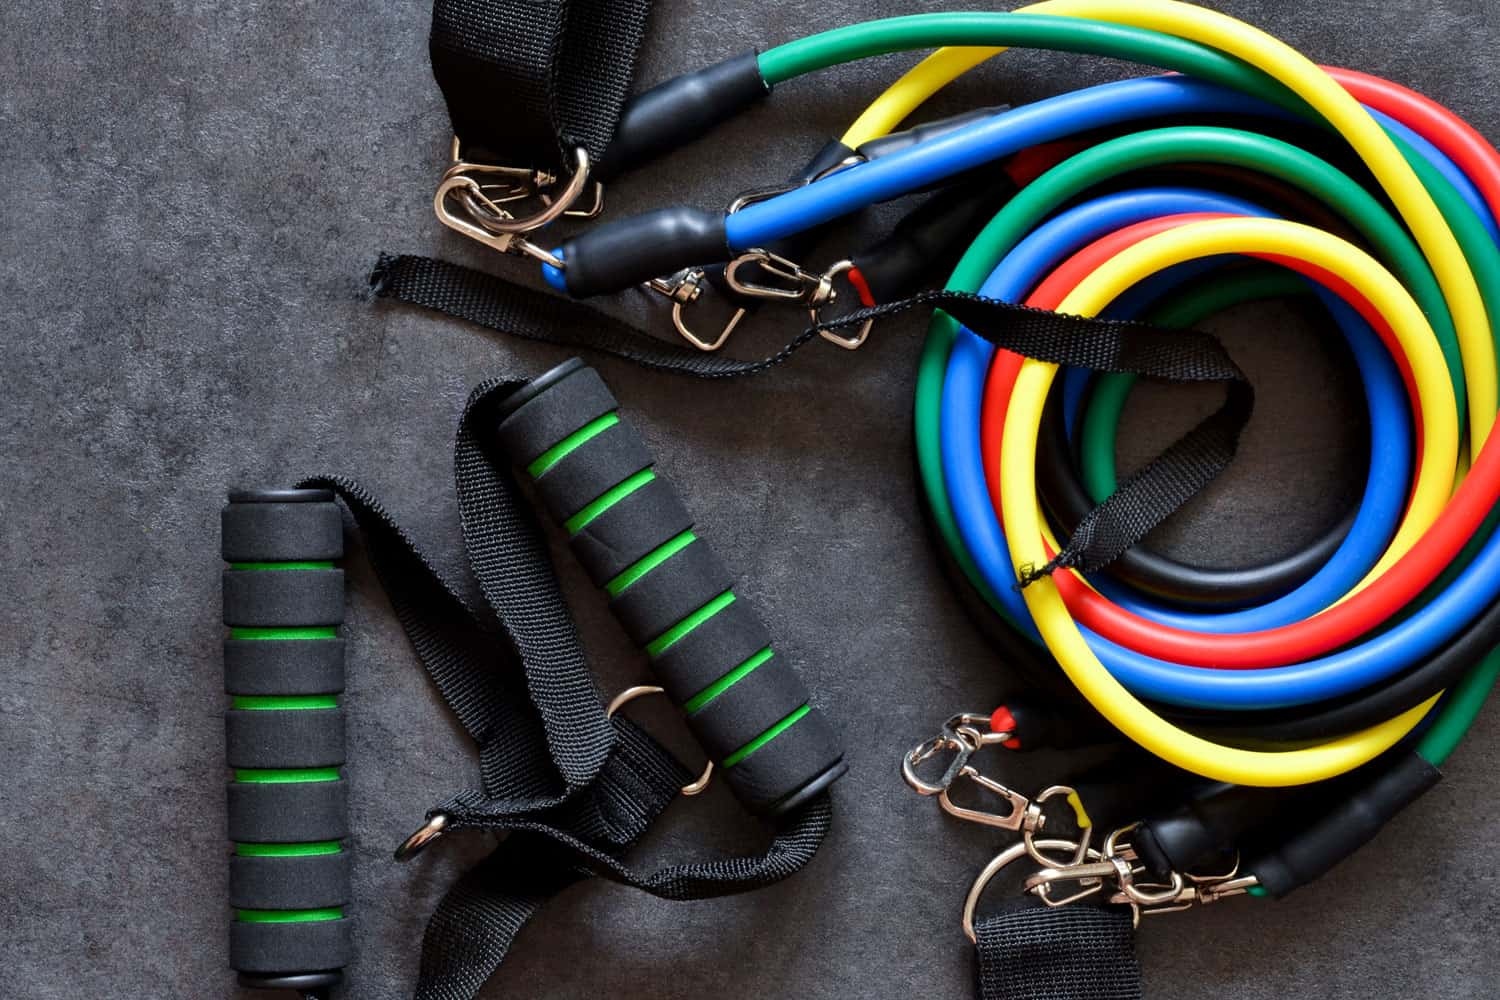 Different colored resistance bands on the gym floor